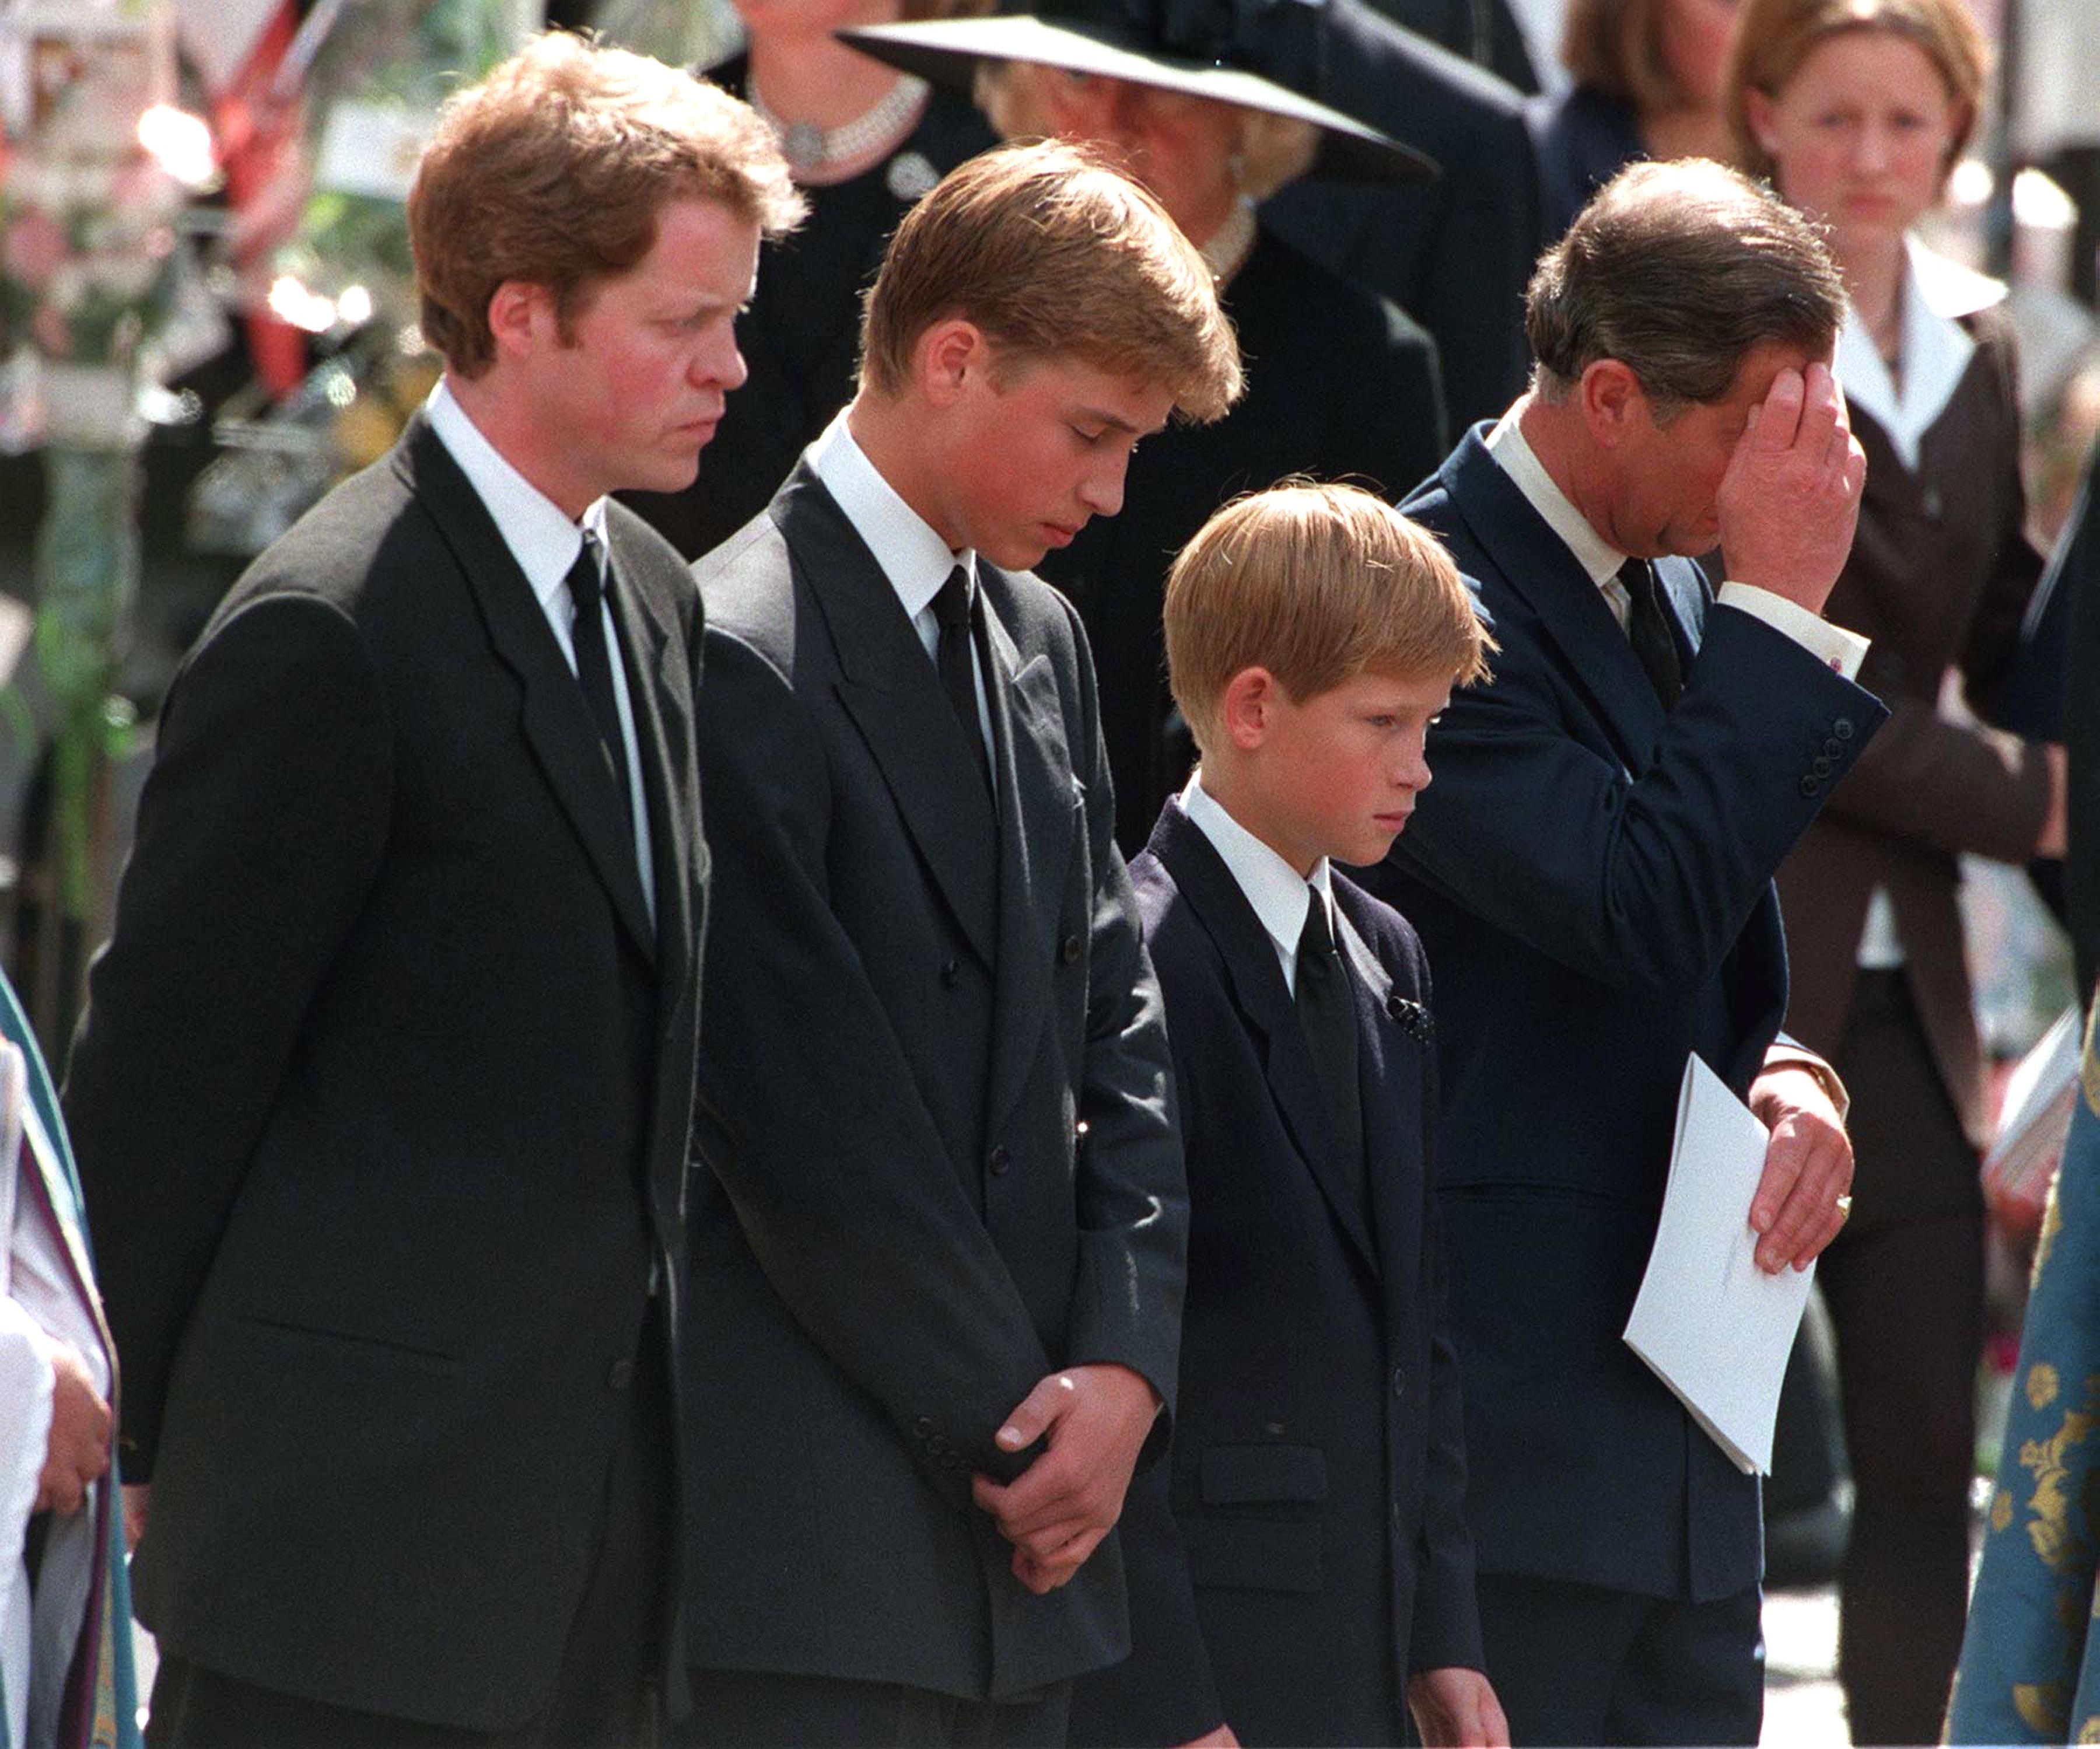 Prince Harry Opens Up About Princess Diana's Death and His Role in the  Royal Family